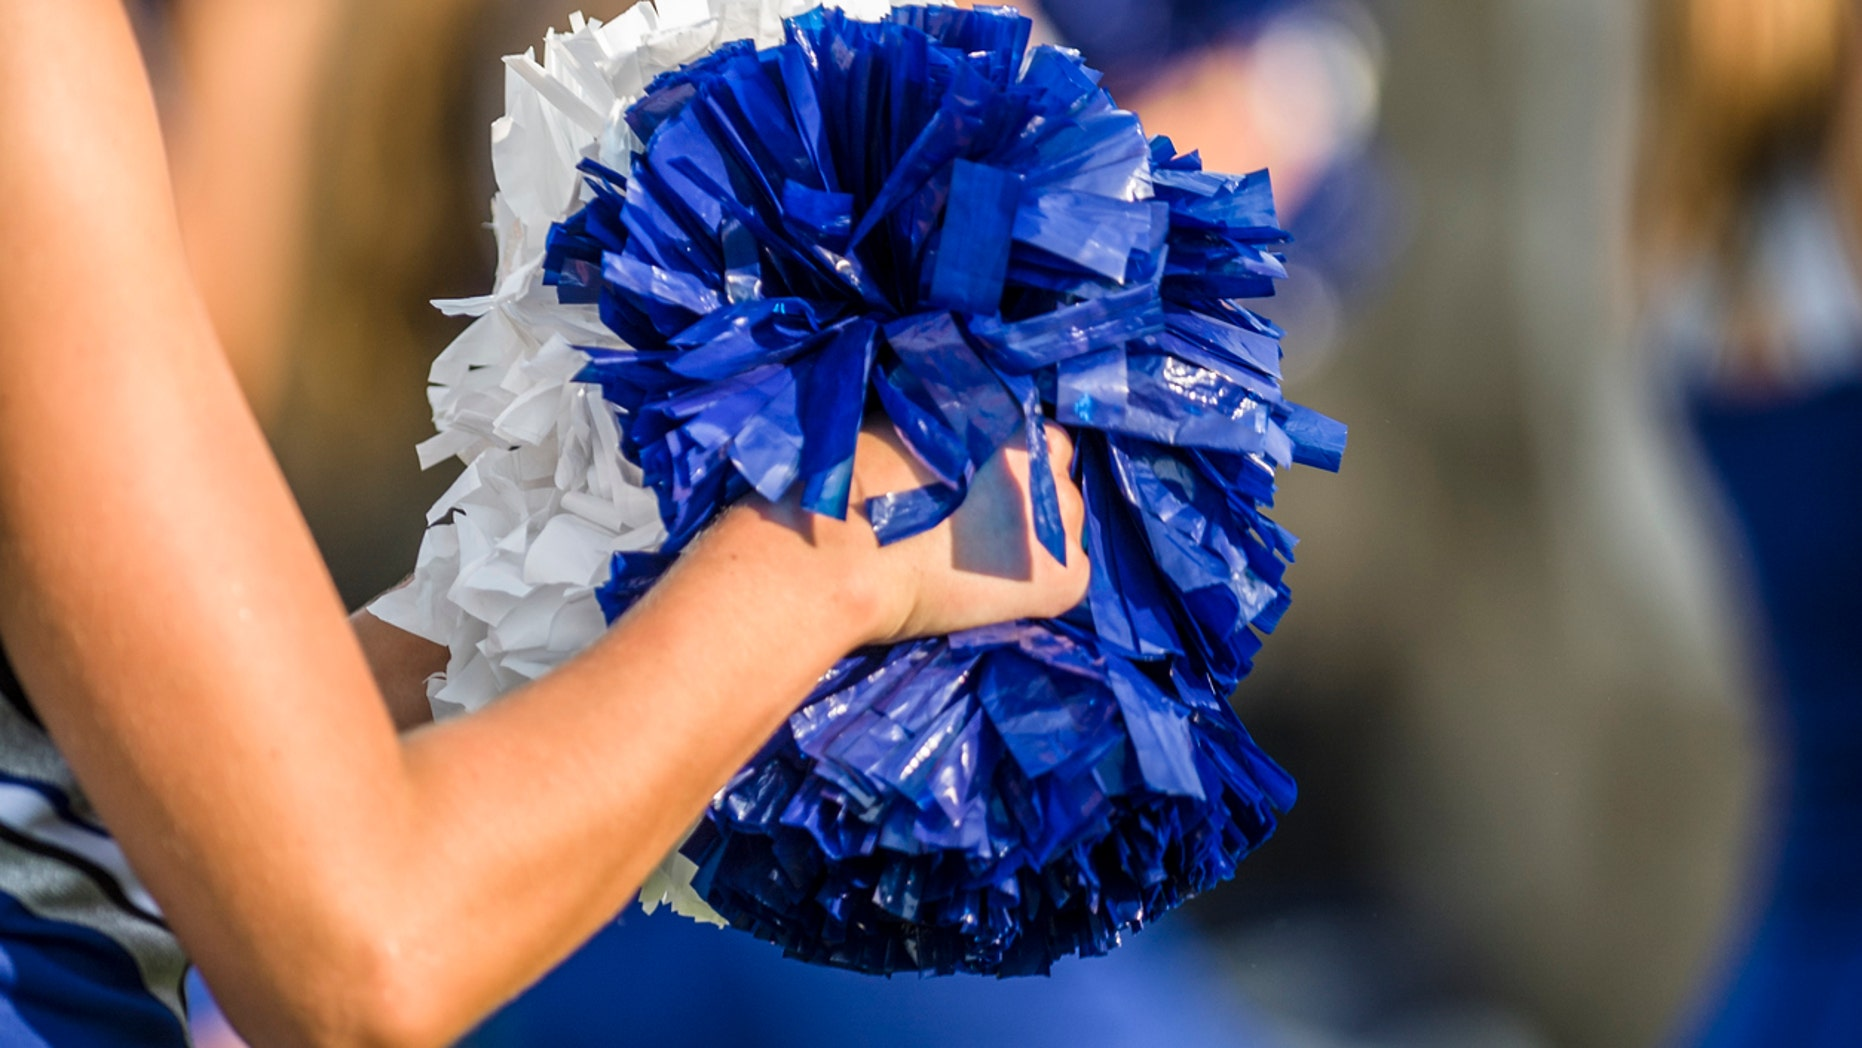 Cheerleader shaking blue and white pom poms